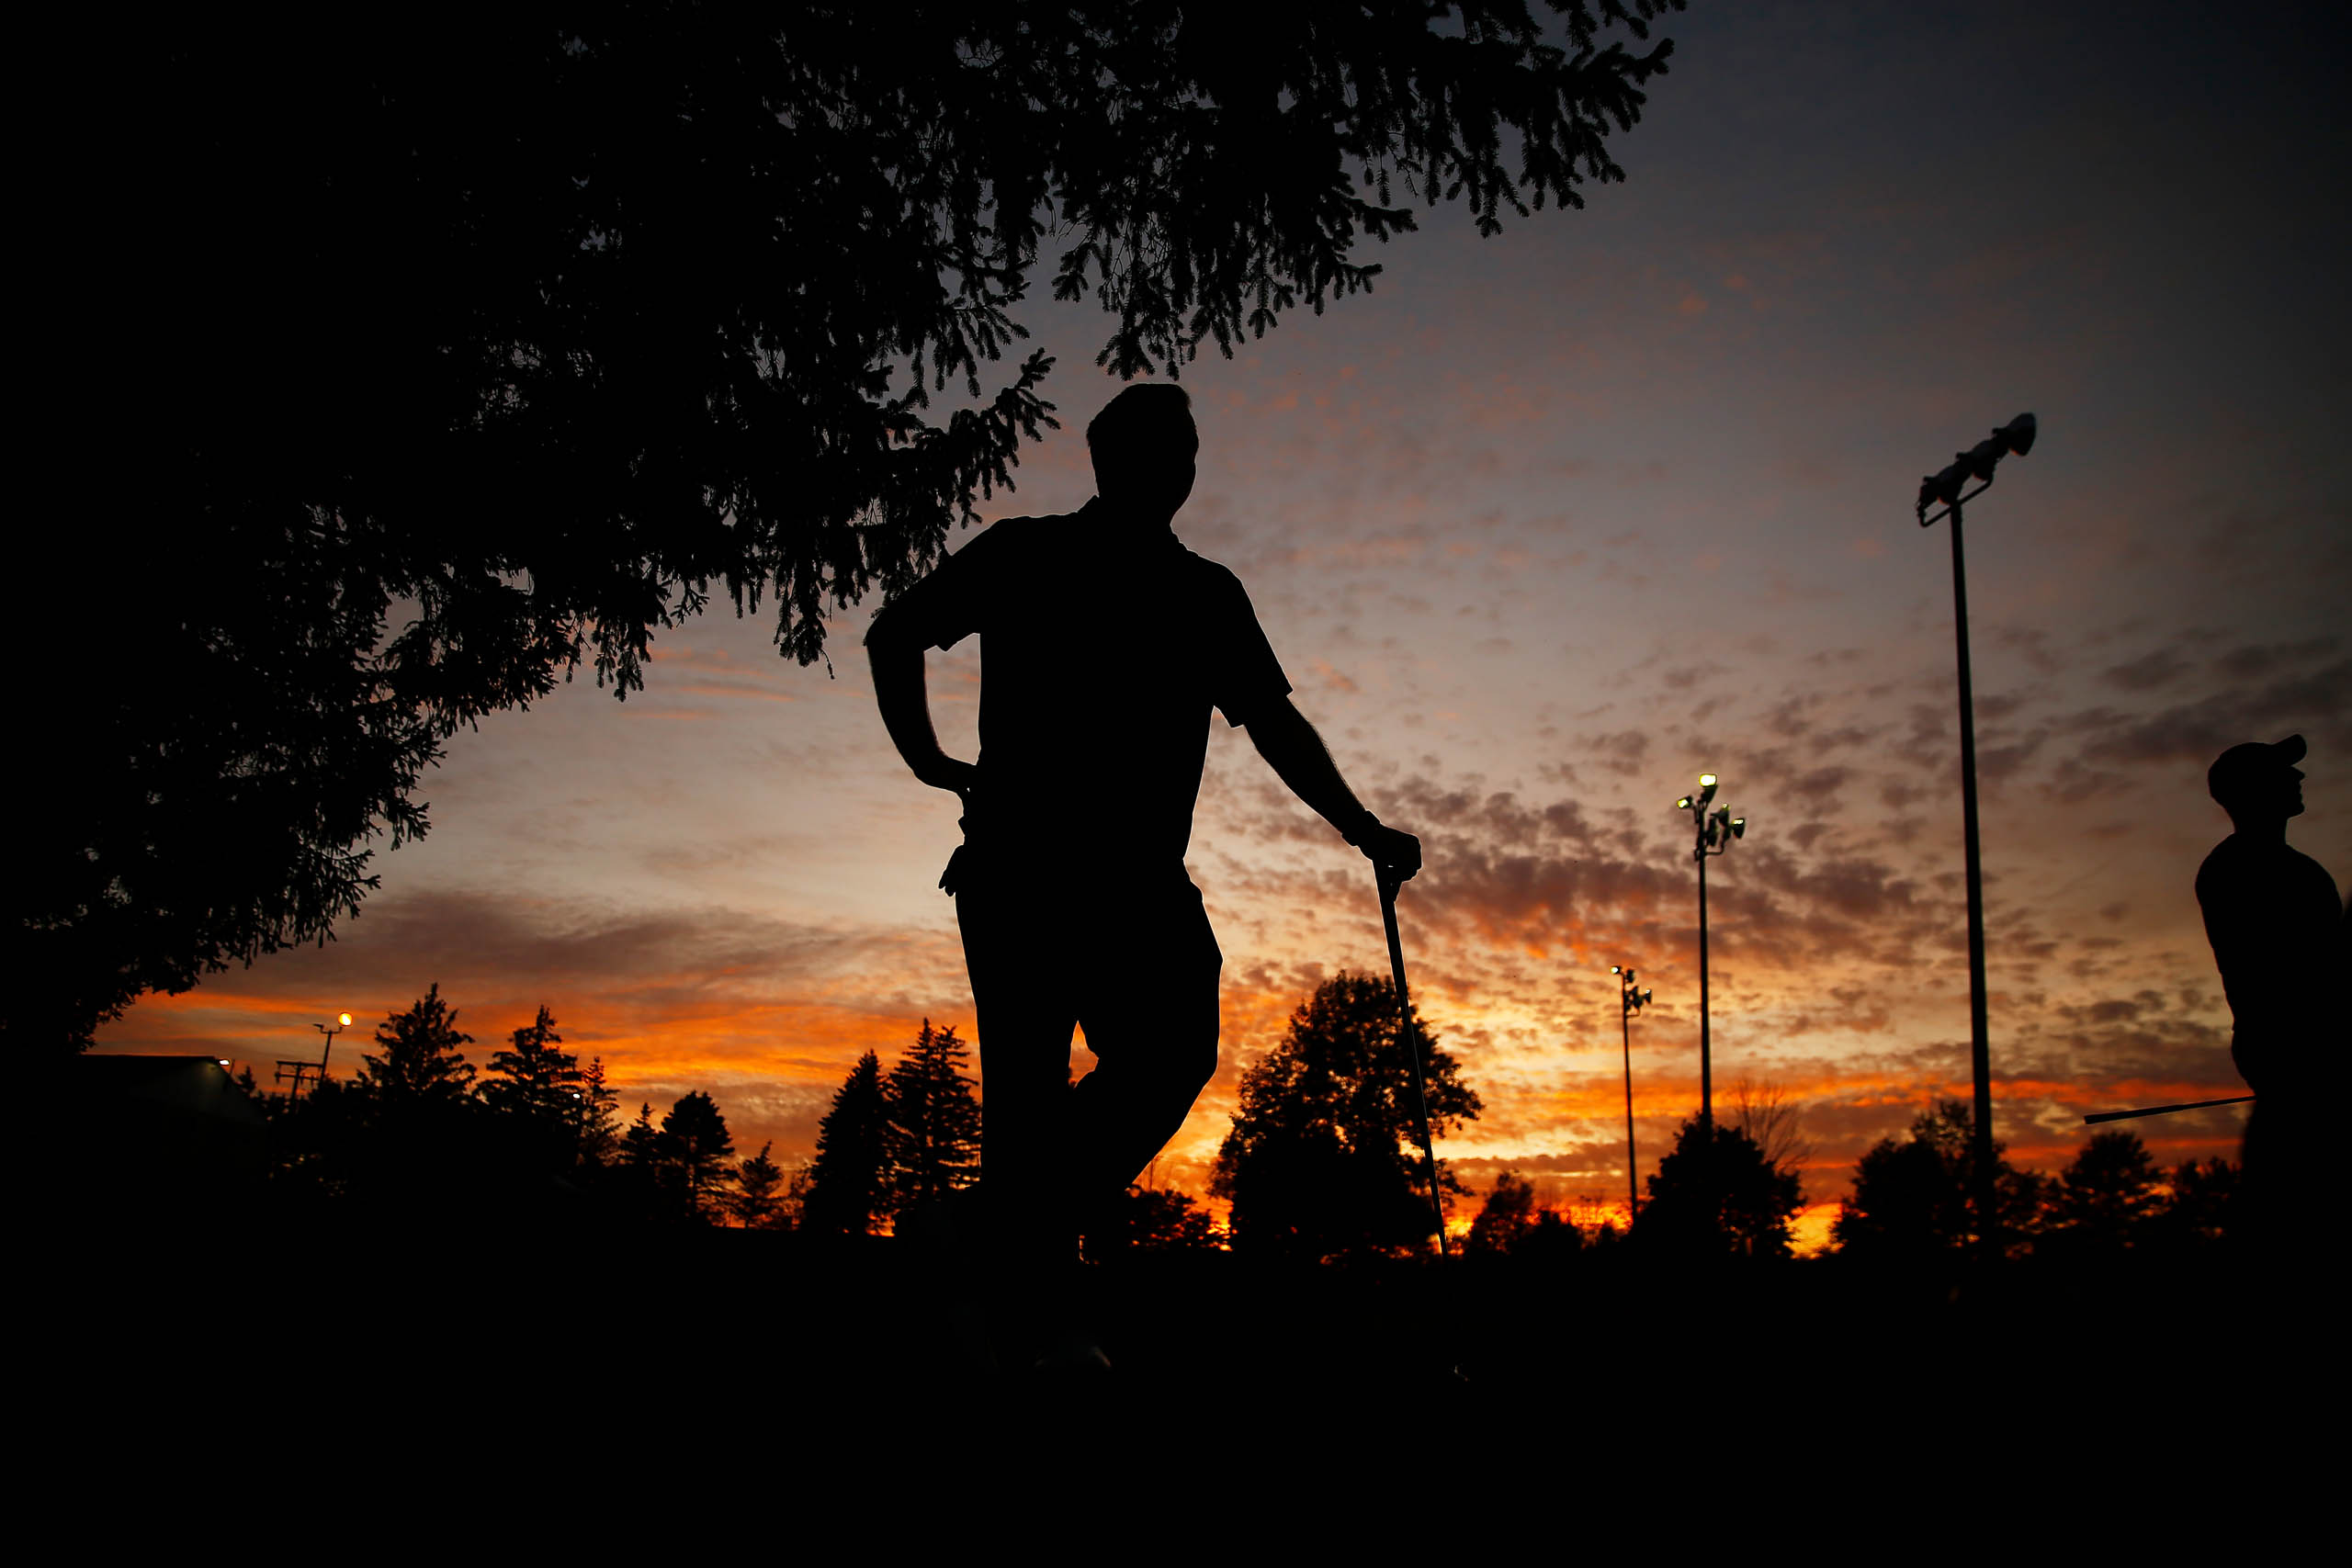 Chris Smith is silhouetted against the sunset before teeing off for night golf at the Bob-O-Link golf course on Friday September 20, 2019 in Orchard Park, New York. (Photo by Jared Wickerham/Golfers Journal)